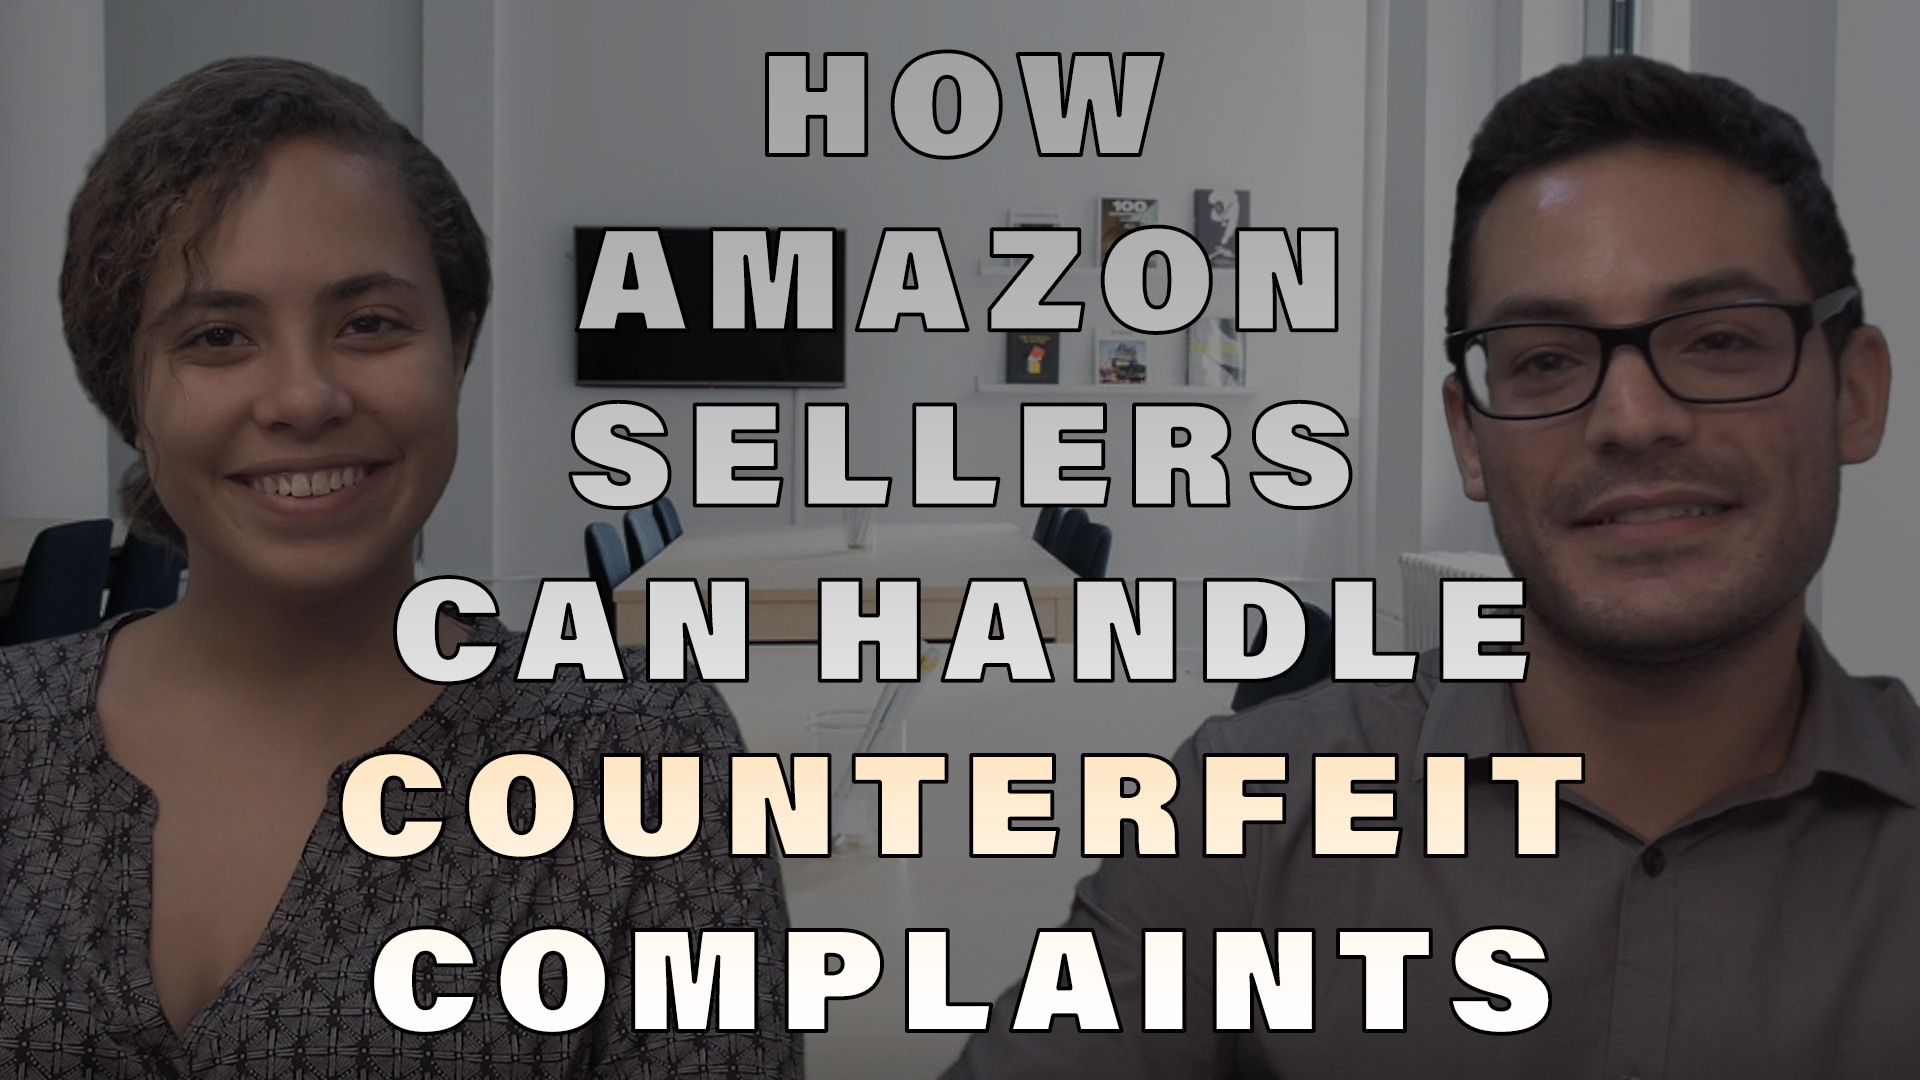 How Amazon Sellers Can Handle Counterfeit Complaints